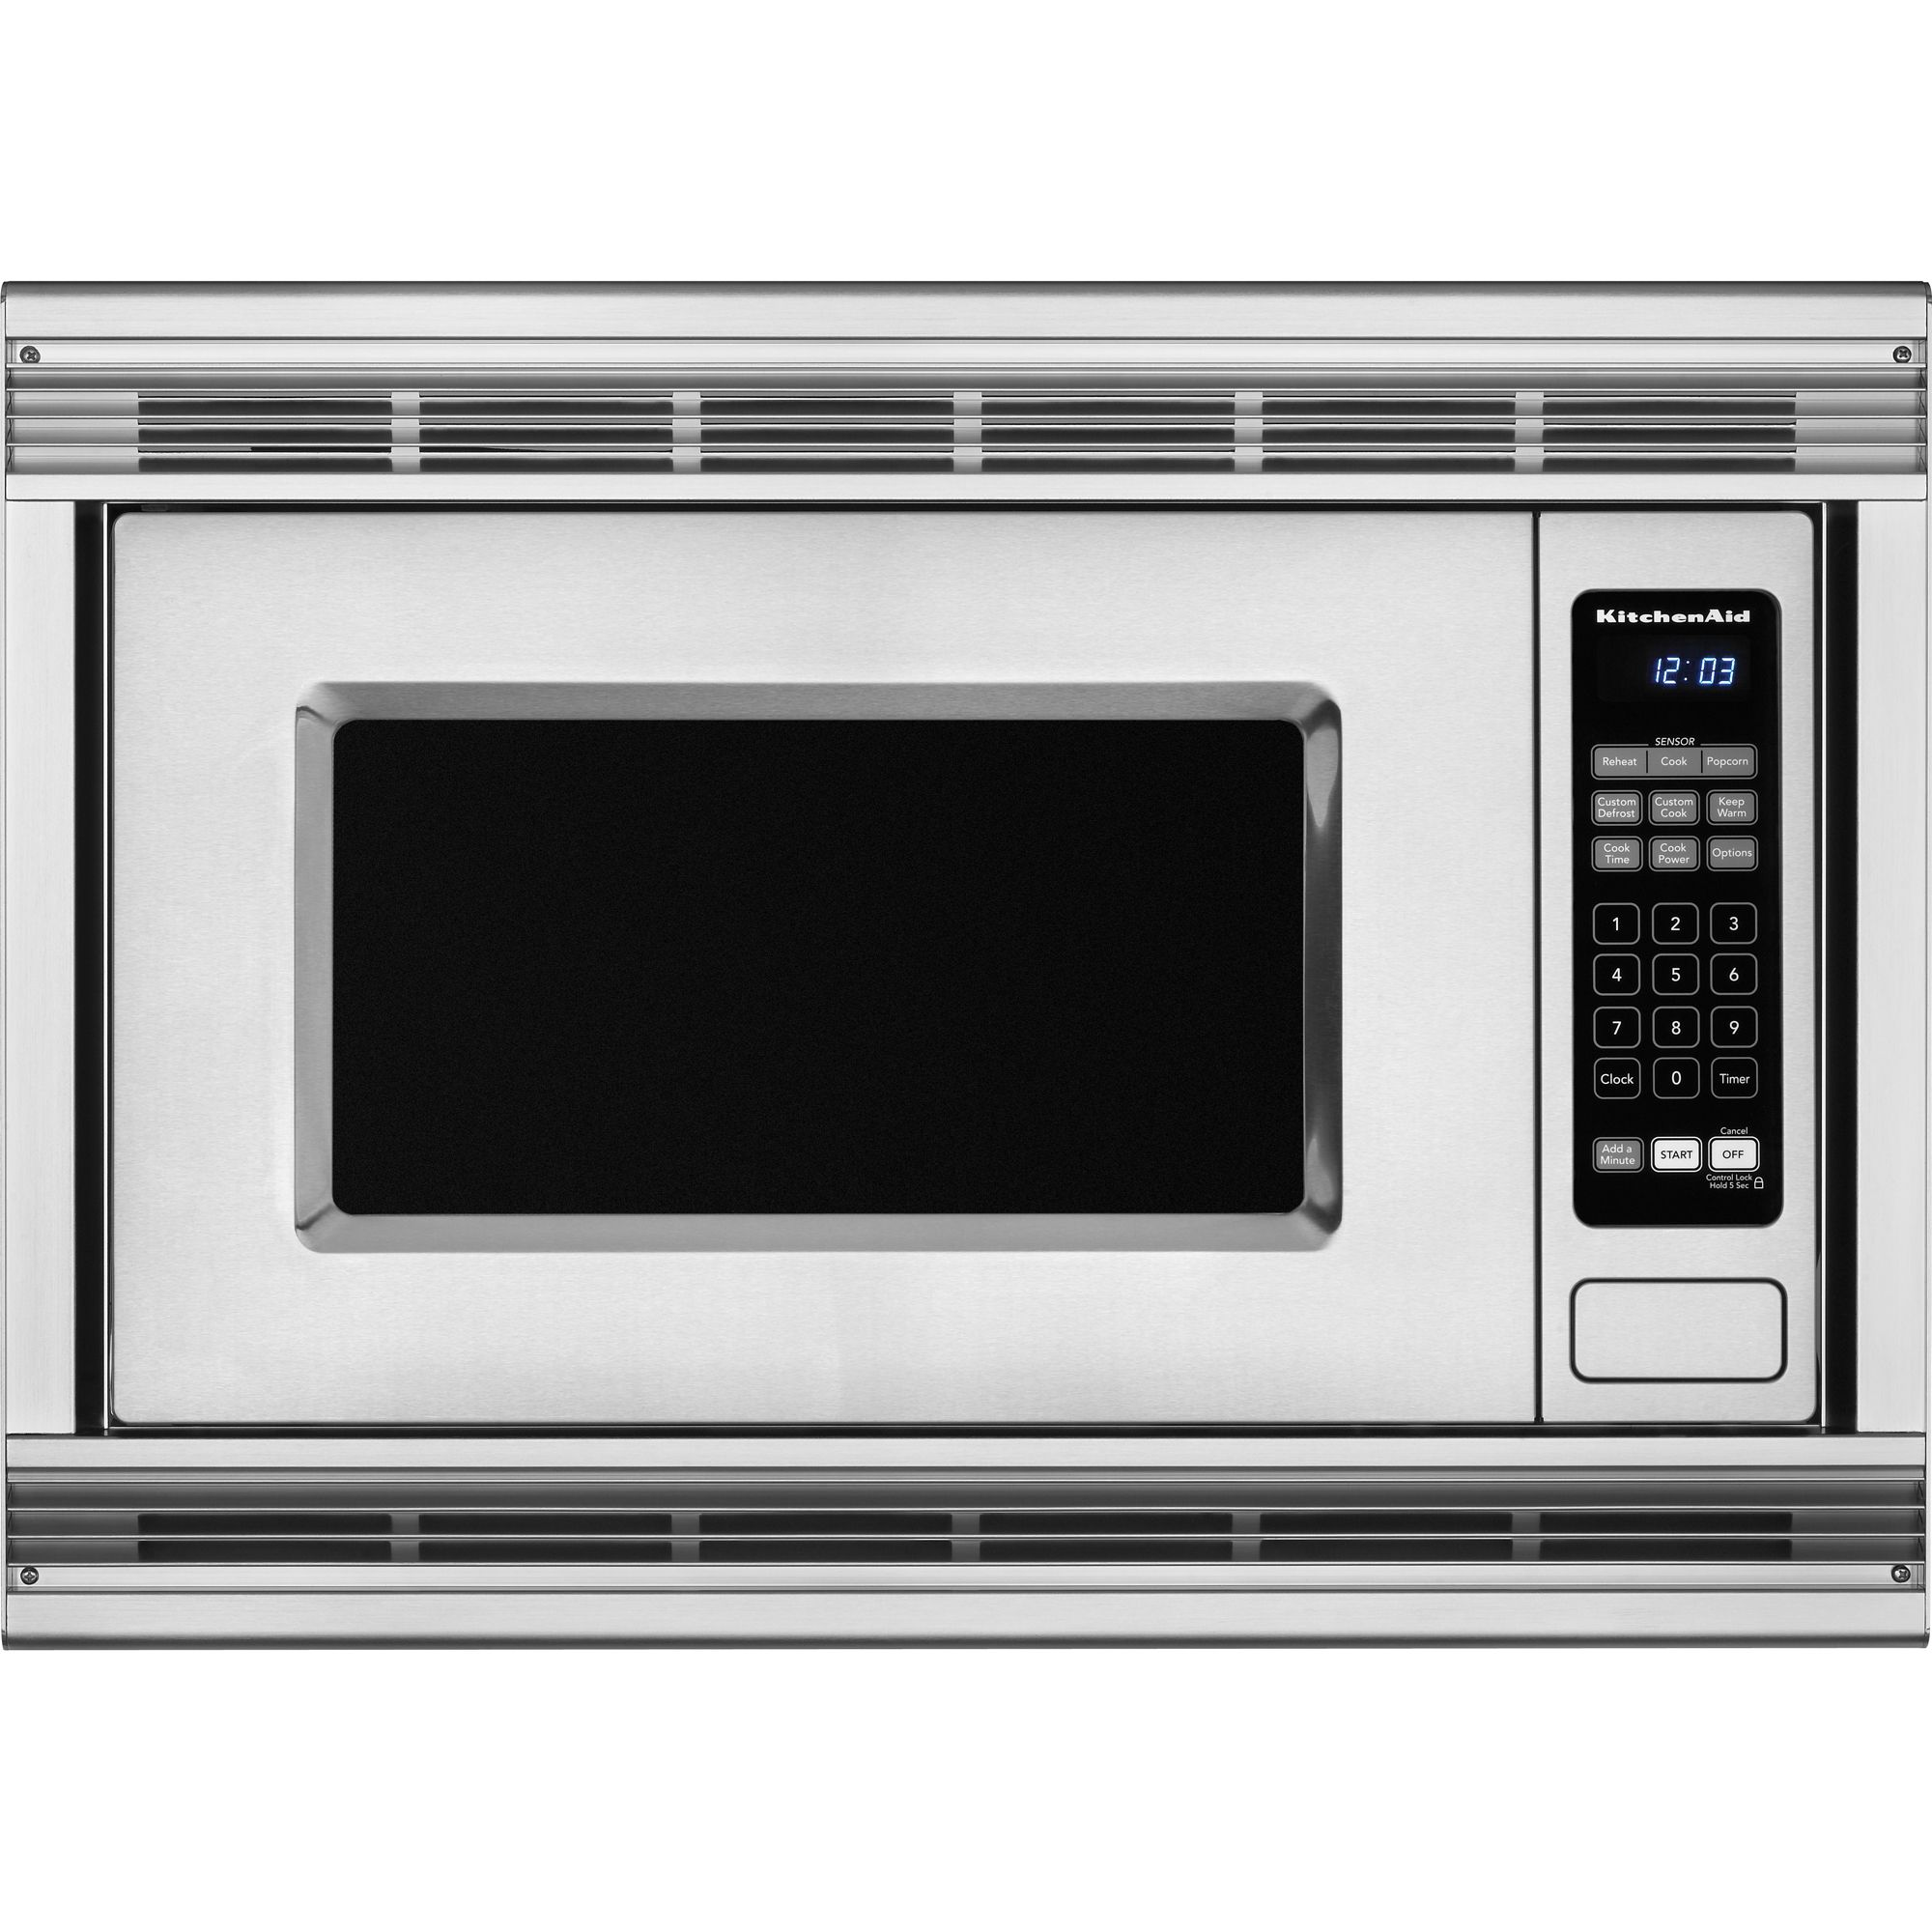 "KitchenAid 22"" 1.5 cu. ft. Countertop Microwave Oven"